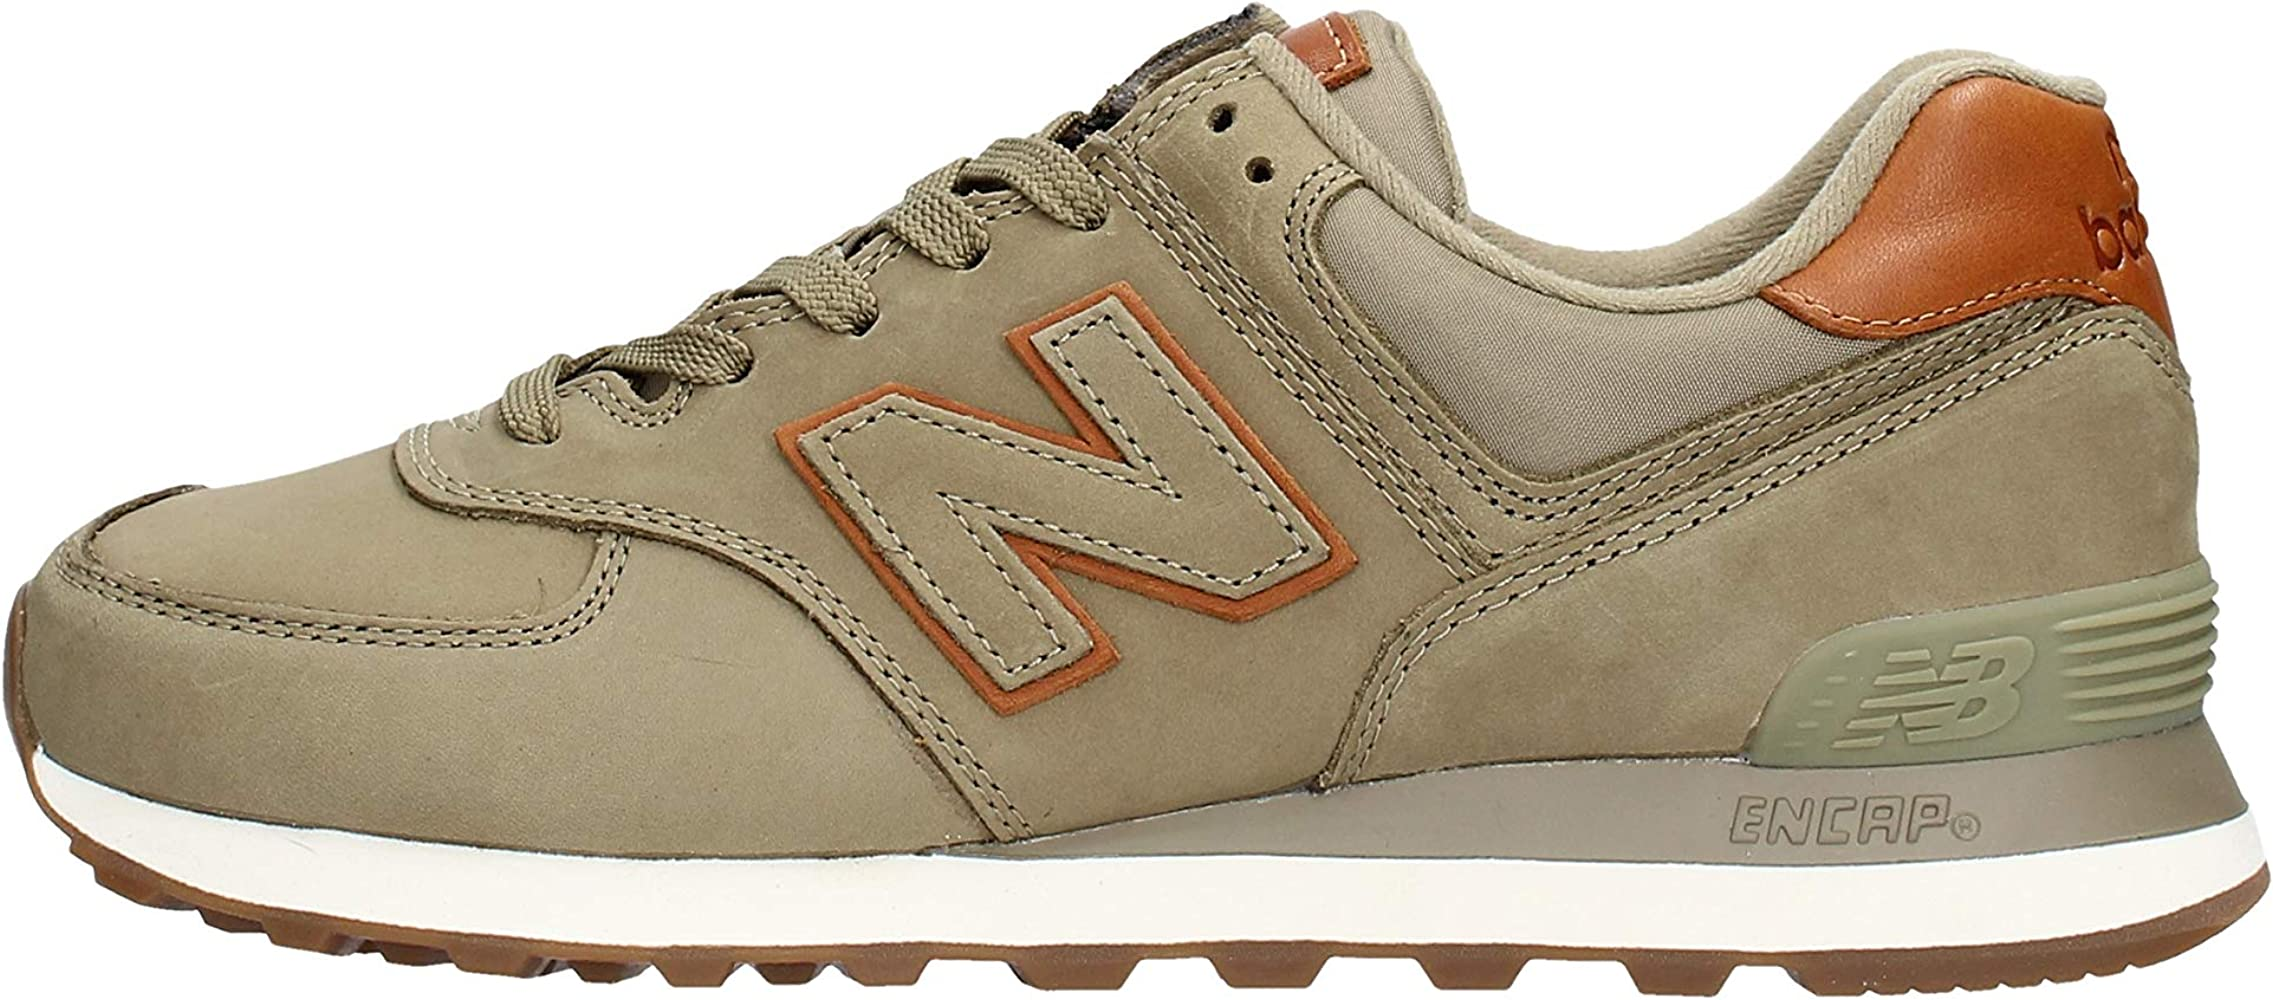 new balance 574 uomo primavera estate